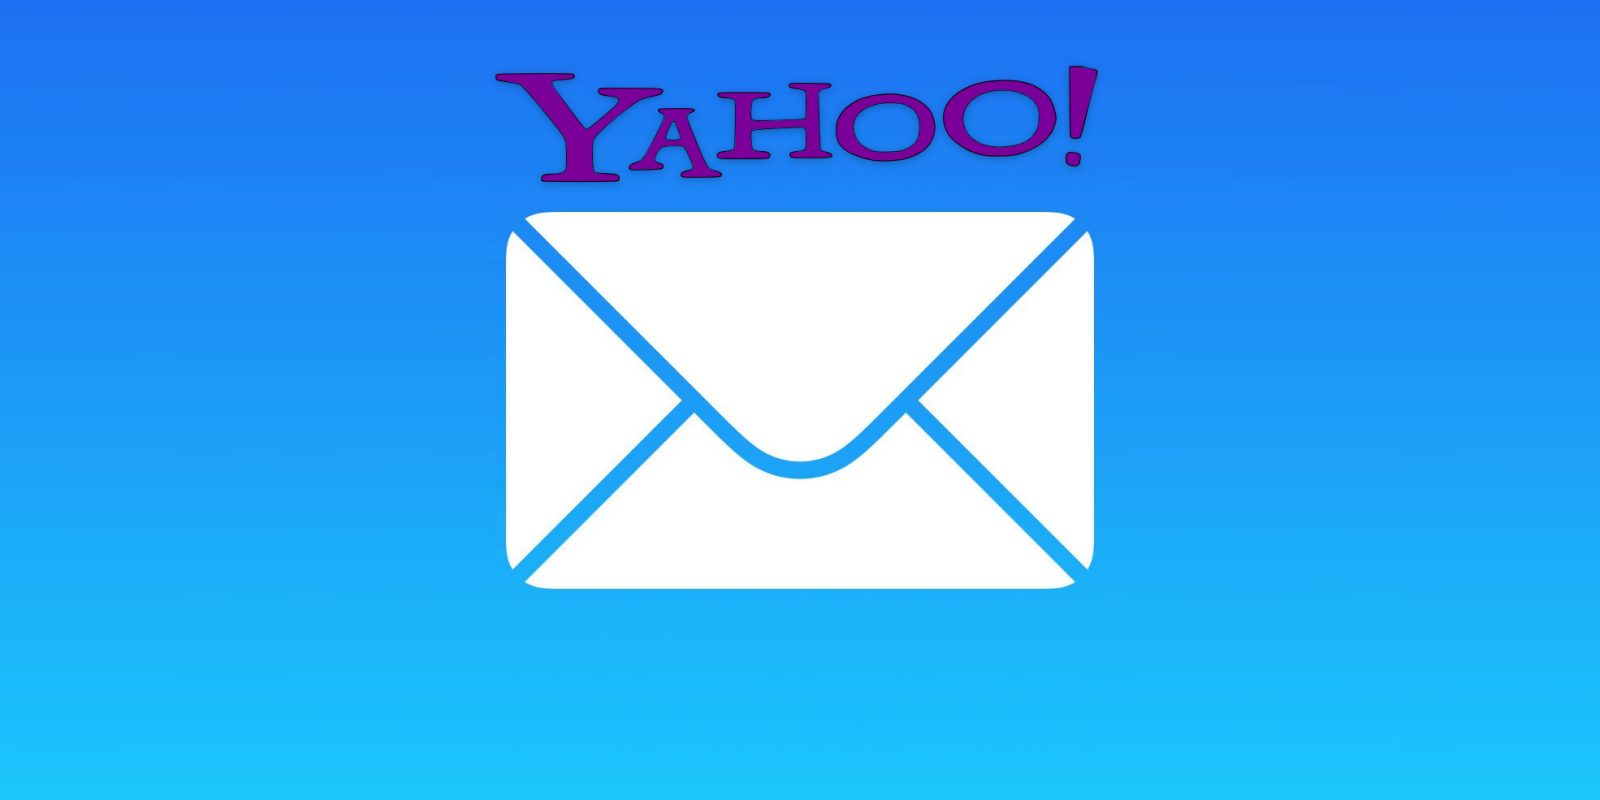 Yahoo email not working with iPhone and iPad Mail app for